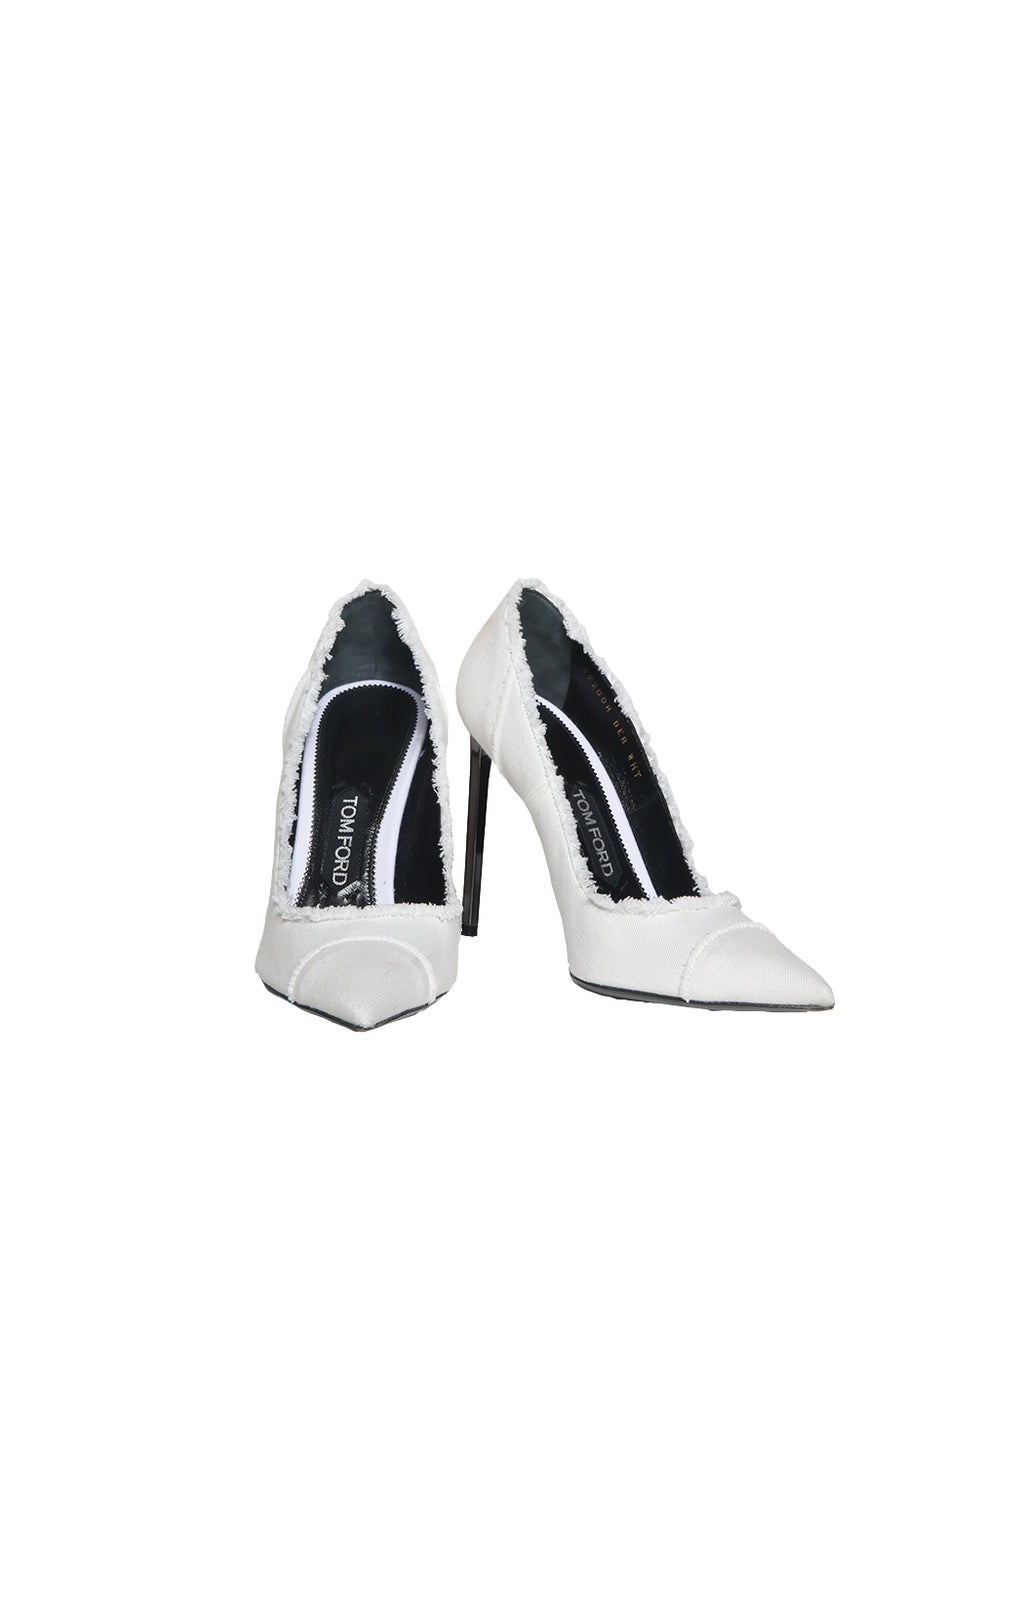 Front view of TOM FORD  Pumps Size: 39 (US 9)